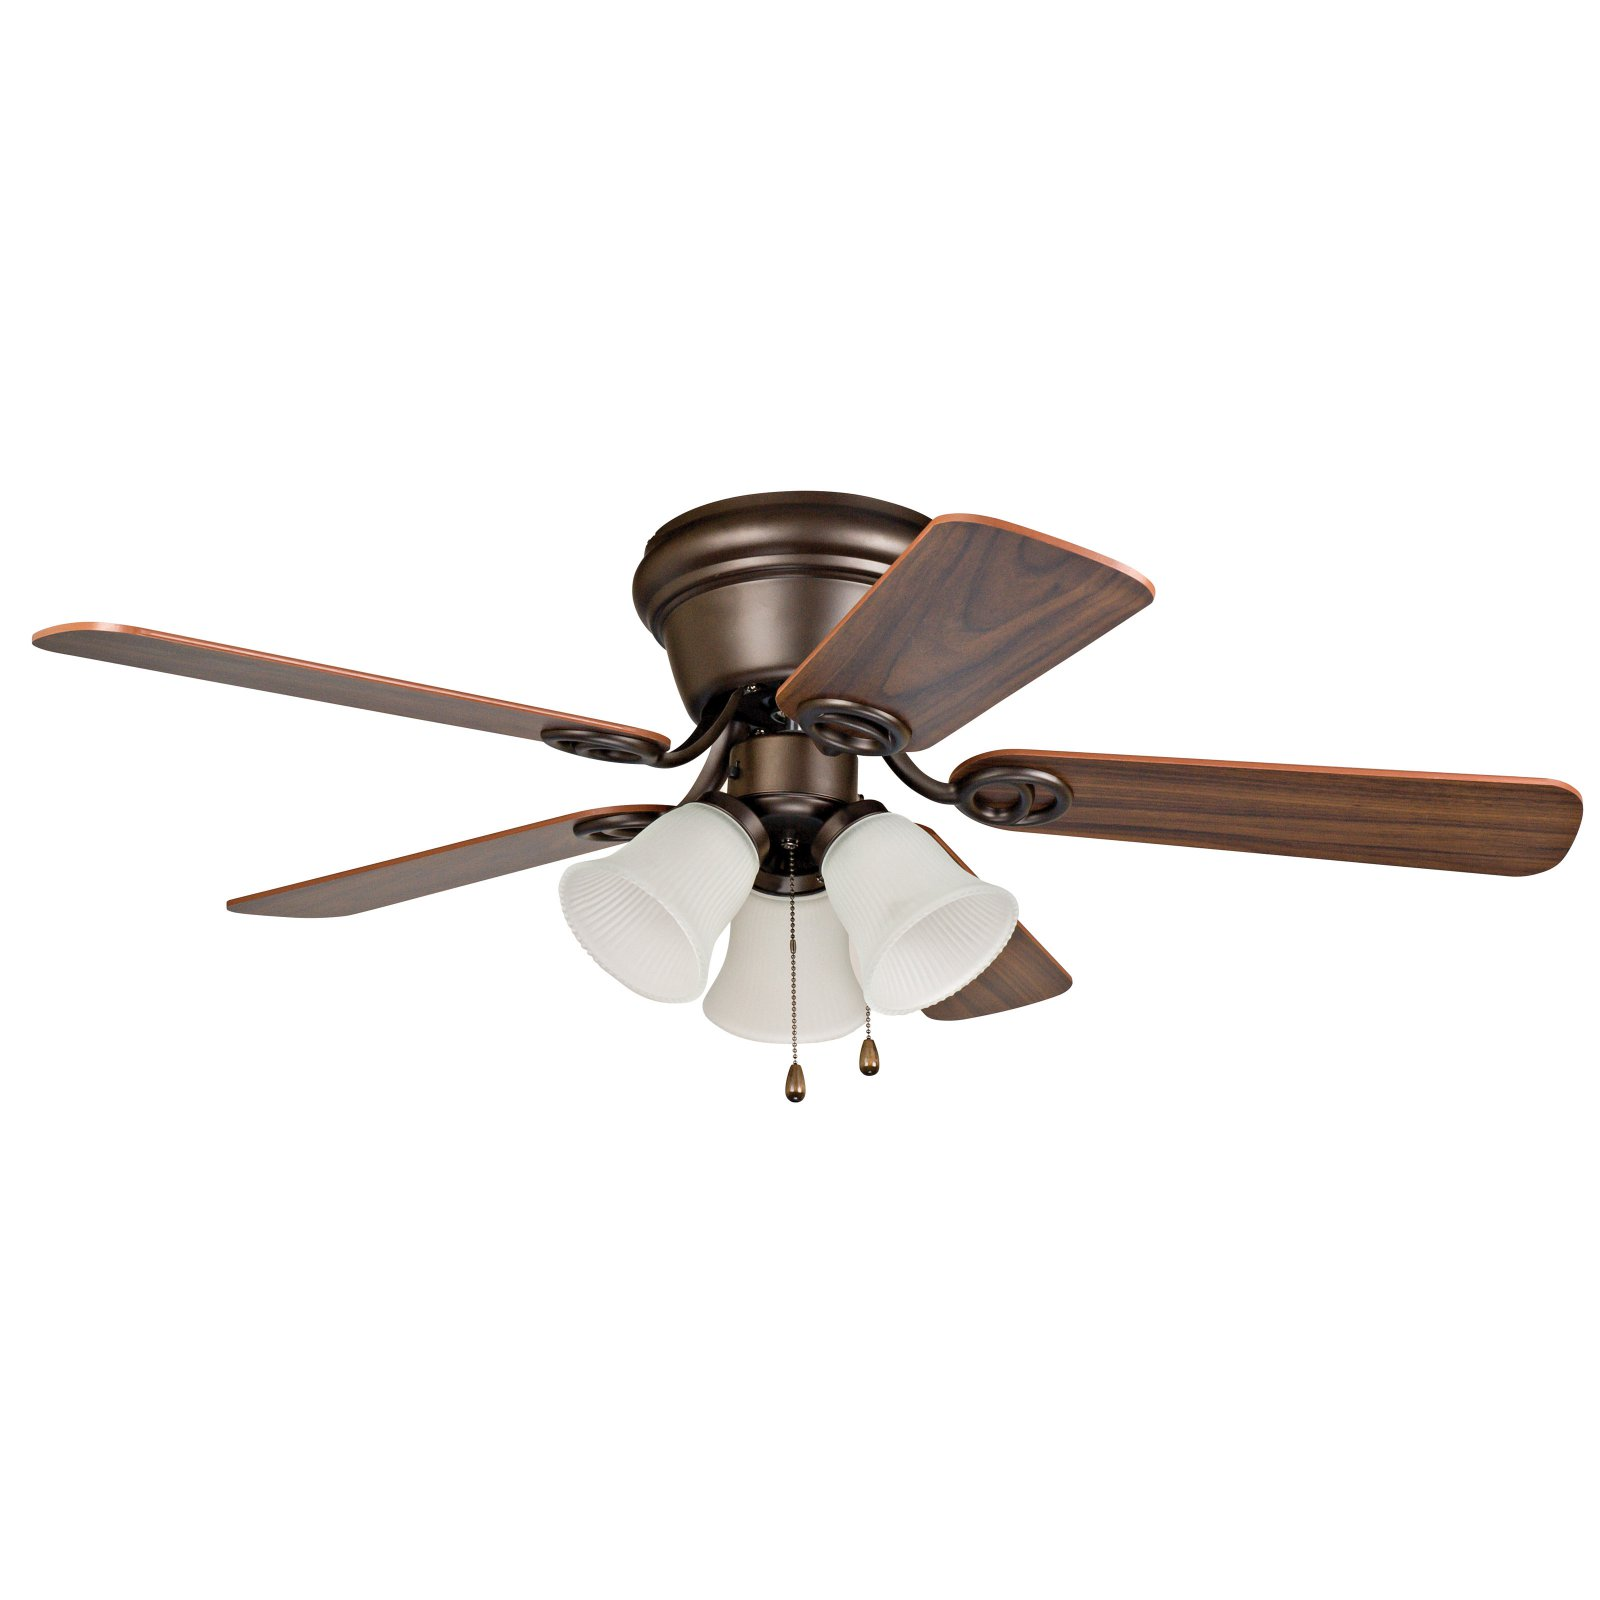 Craftmade Wyman 42 in. Indoor Ceiling Fan with 3 Lights by Ellington Fans